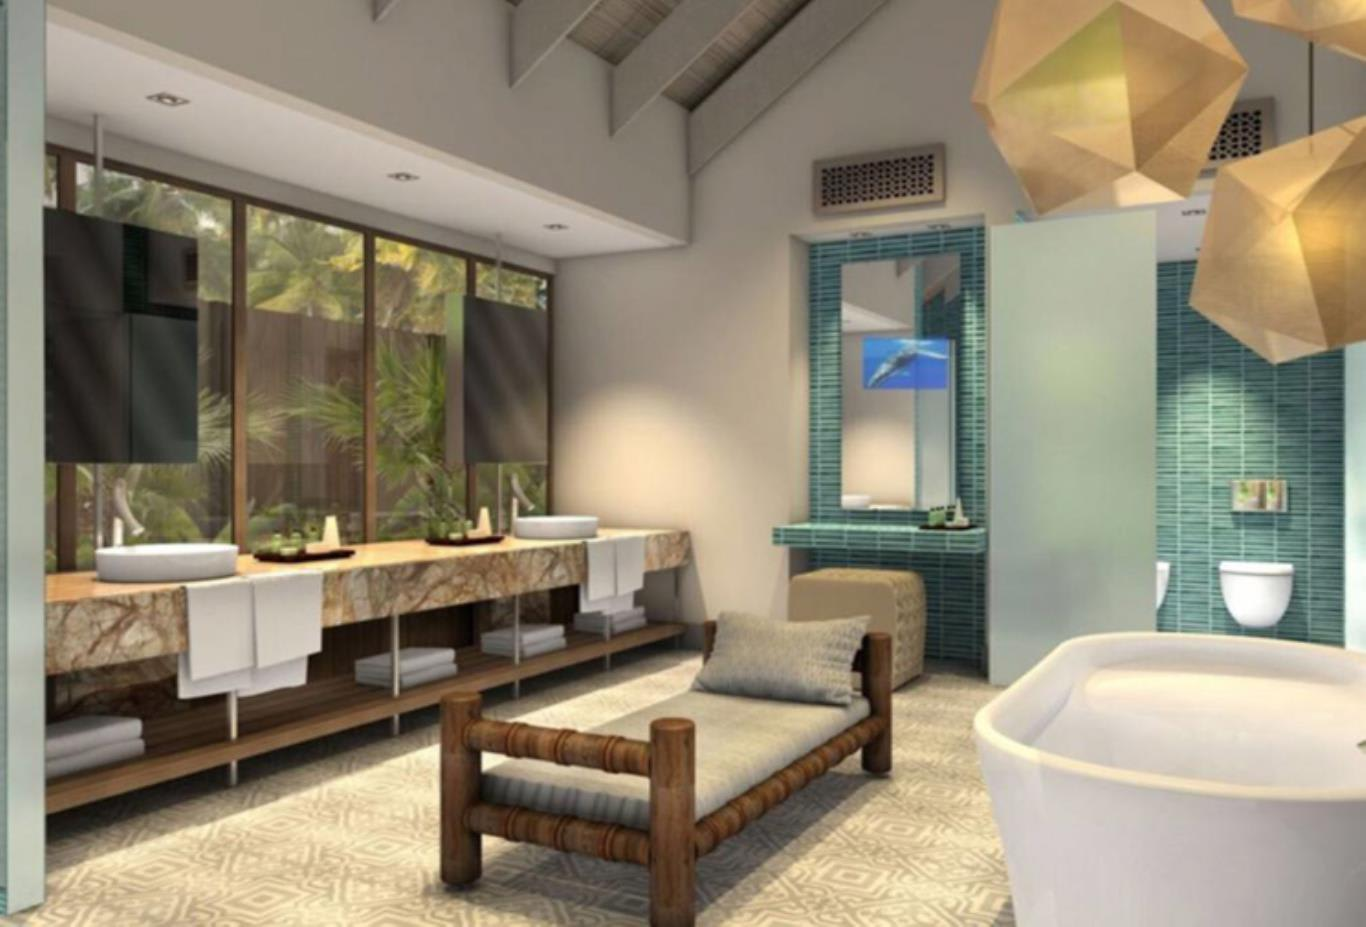 3 Bedroom presidential villa bathroom